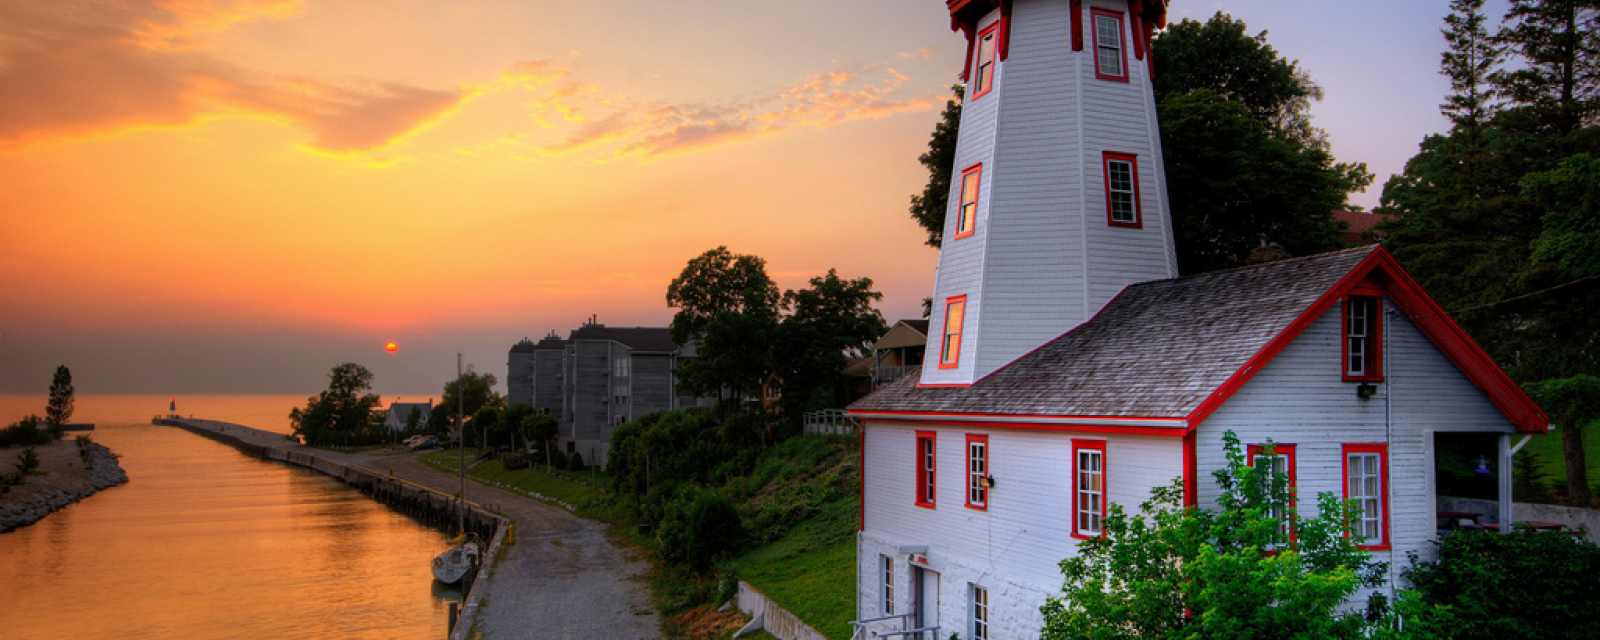 Kincardine Light house with Sunset